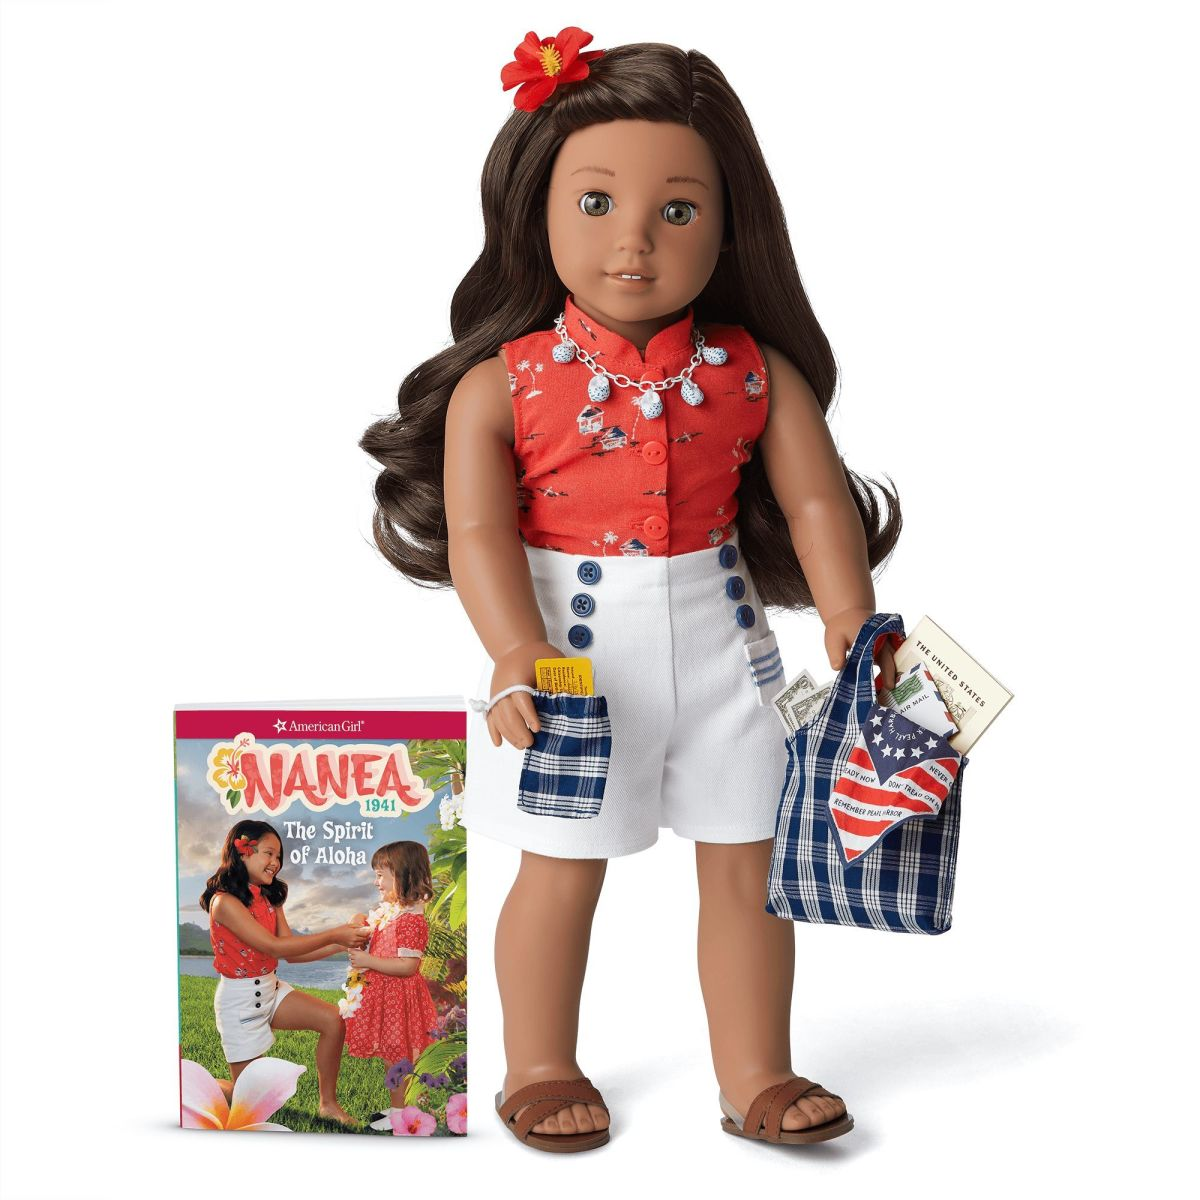 Nanea, pictured wearing her accessories